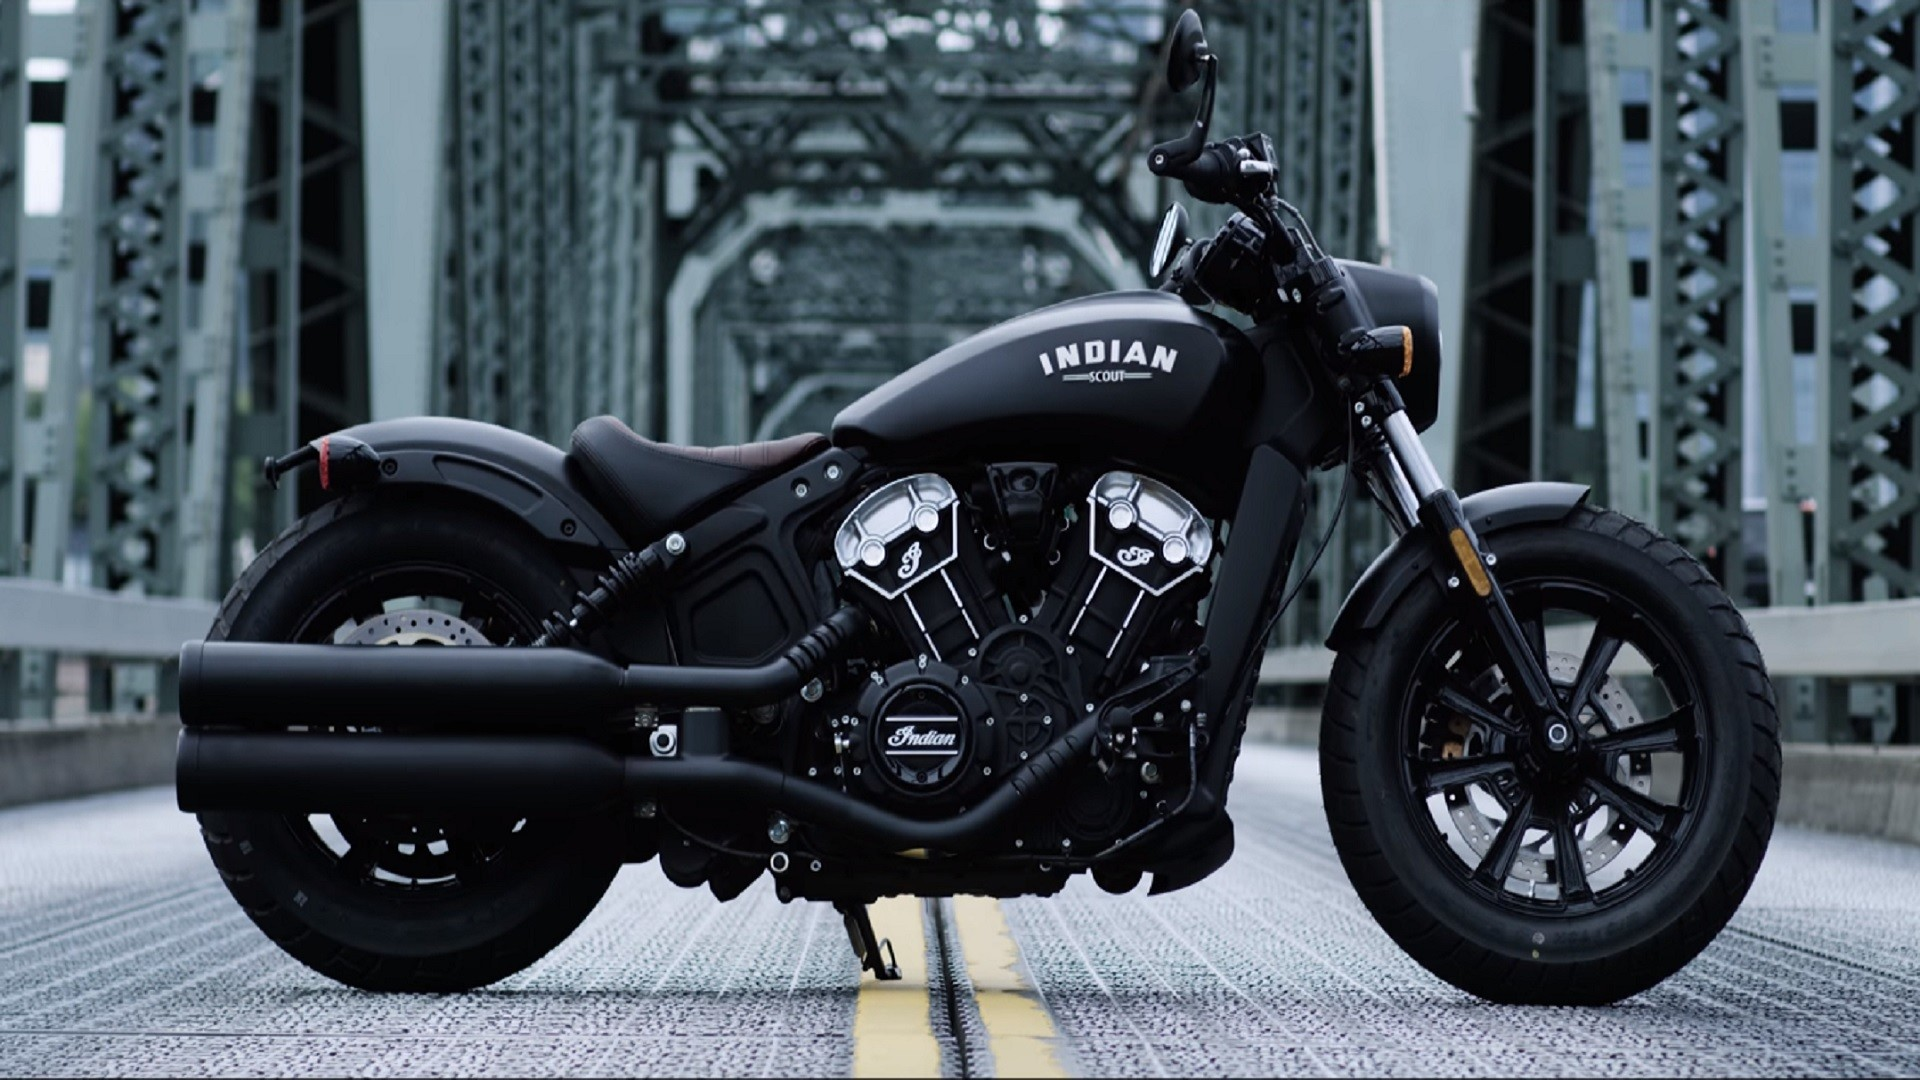 Indian Scout Bobber Motorcycle Is Slammed Style In Indian Scout Bobber Wallpaper Hd 1920x1080 Download Hd Wallpaper Wallpapertip